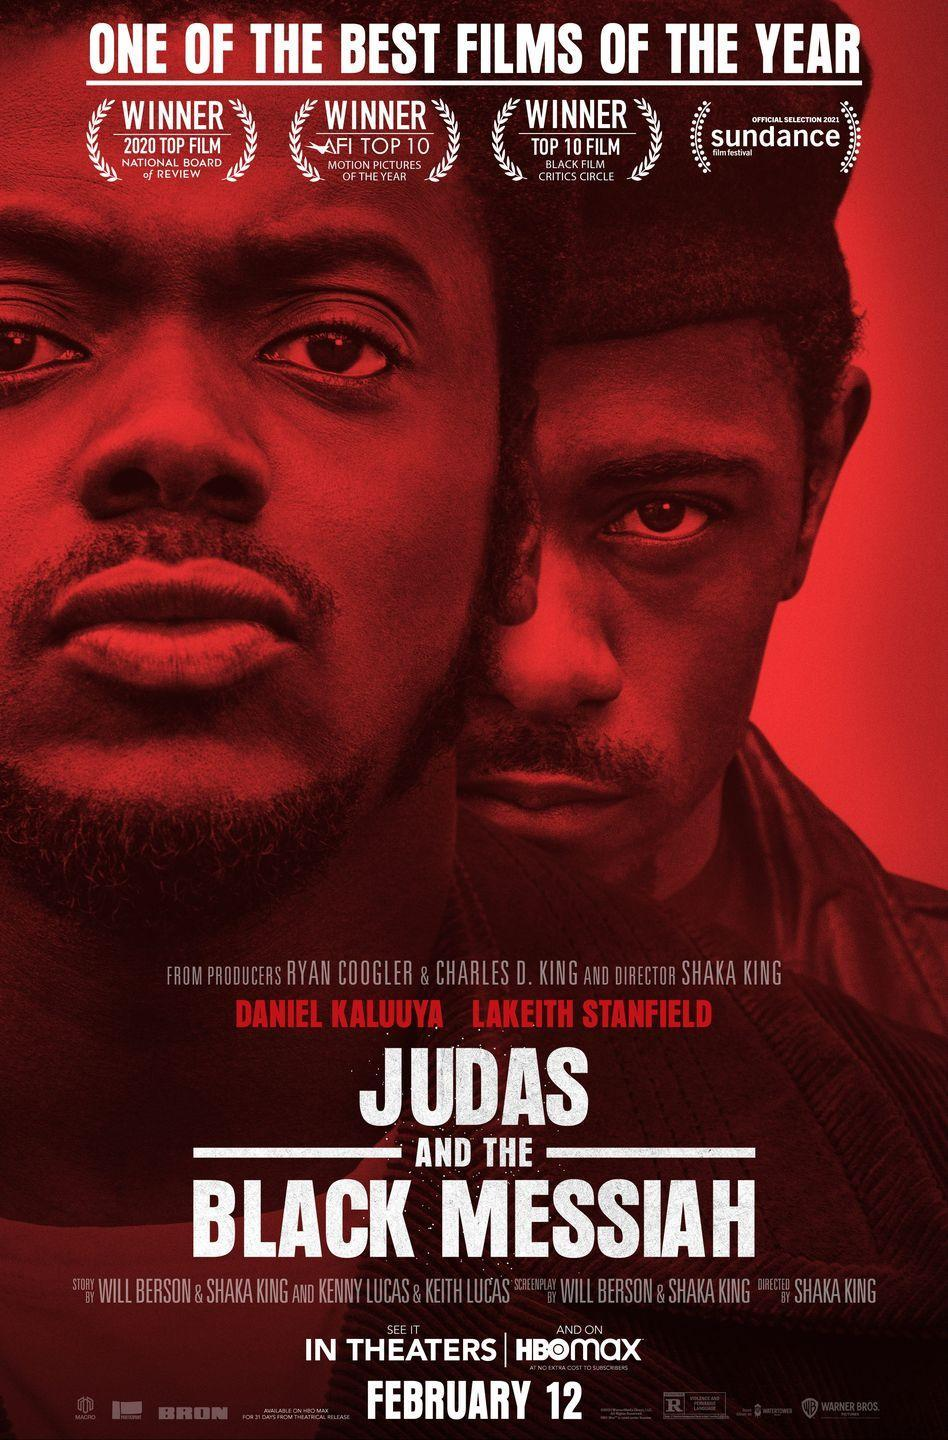 """<p>Earning six Oscar nominations, <em><a href=""""https://www.womenshealthmag.com/life/a35490847/judas-and-the-black-messiah-true-story/"""" rel=""""nofollow noopener"""" target=""""_blank"""" data-ylk=""""slk:Judas and the Black Messiah"""" class=""""link rapid-noclick-resp"""">Judas and the Black Messiah</a></em> became a critically-acclaimed classic as soon as it hit the film scene in early 2021. Daniel Kaluuya plays Fred Hampton, chairman of the Illinois chapter of the Black Panther Party, who is turned in by an FBI informant. </p><p><a class=""""link rapid-noclick-resp"""" href=""""https://www.amazon.com/Judas-Black-Messiah-Daniel-Kaluuya/dp/B0916KJQL7?tag=syn-yahoo-20&ascsubtag=%5Bartid%7C10063.g.36572054%5Bsrc%7Cyahoo-us"""" rel=""""nofollow noopener"""" target=""""_blank"""" data-ylk=""""slk:Watch Here"""">Watch Here</a></p>"""